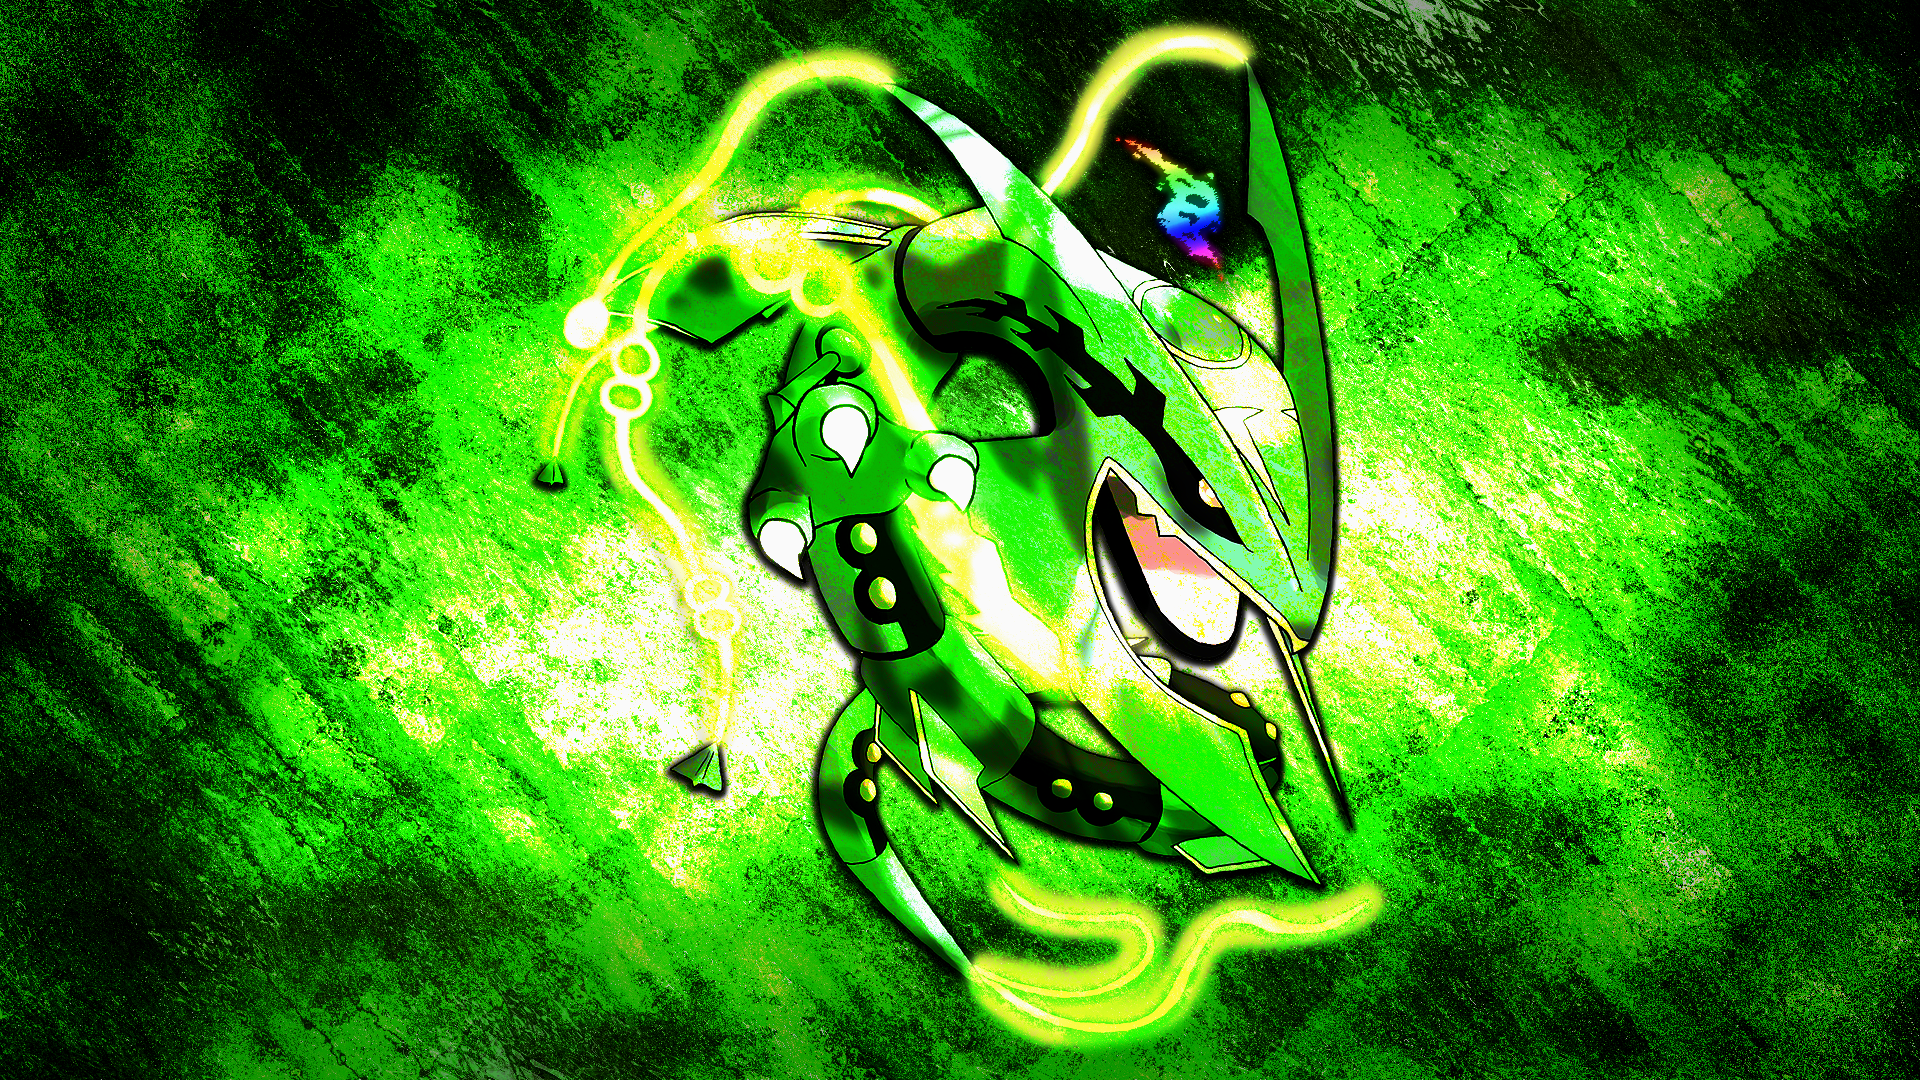 emerald rayquaza wallpapers - photo #3